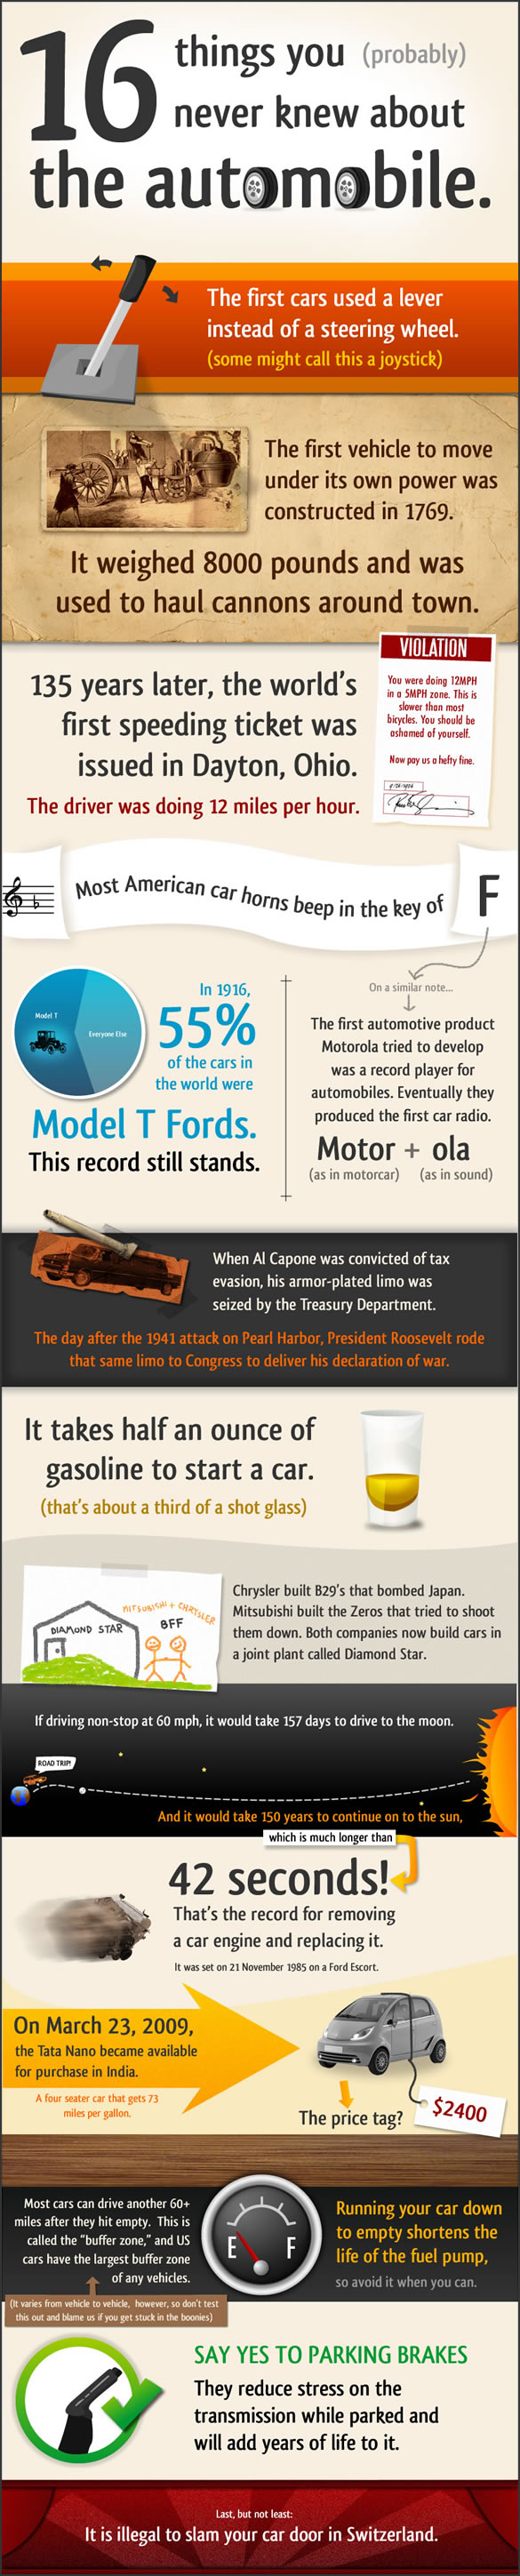 16 Things You Never Knew About the Automobile